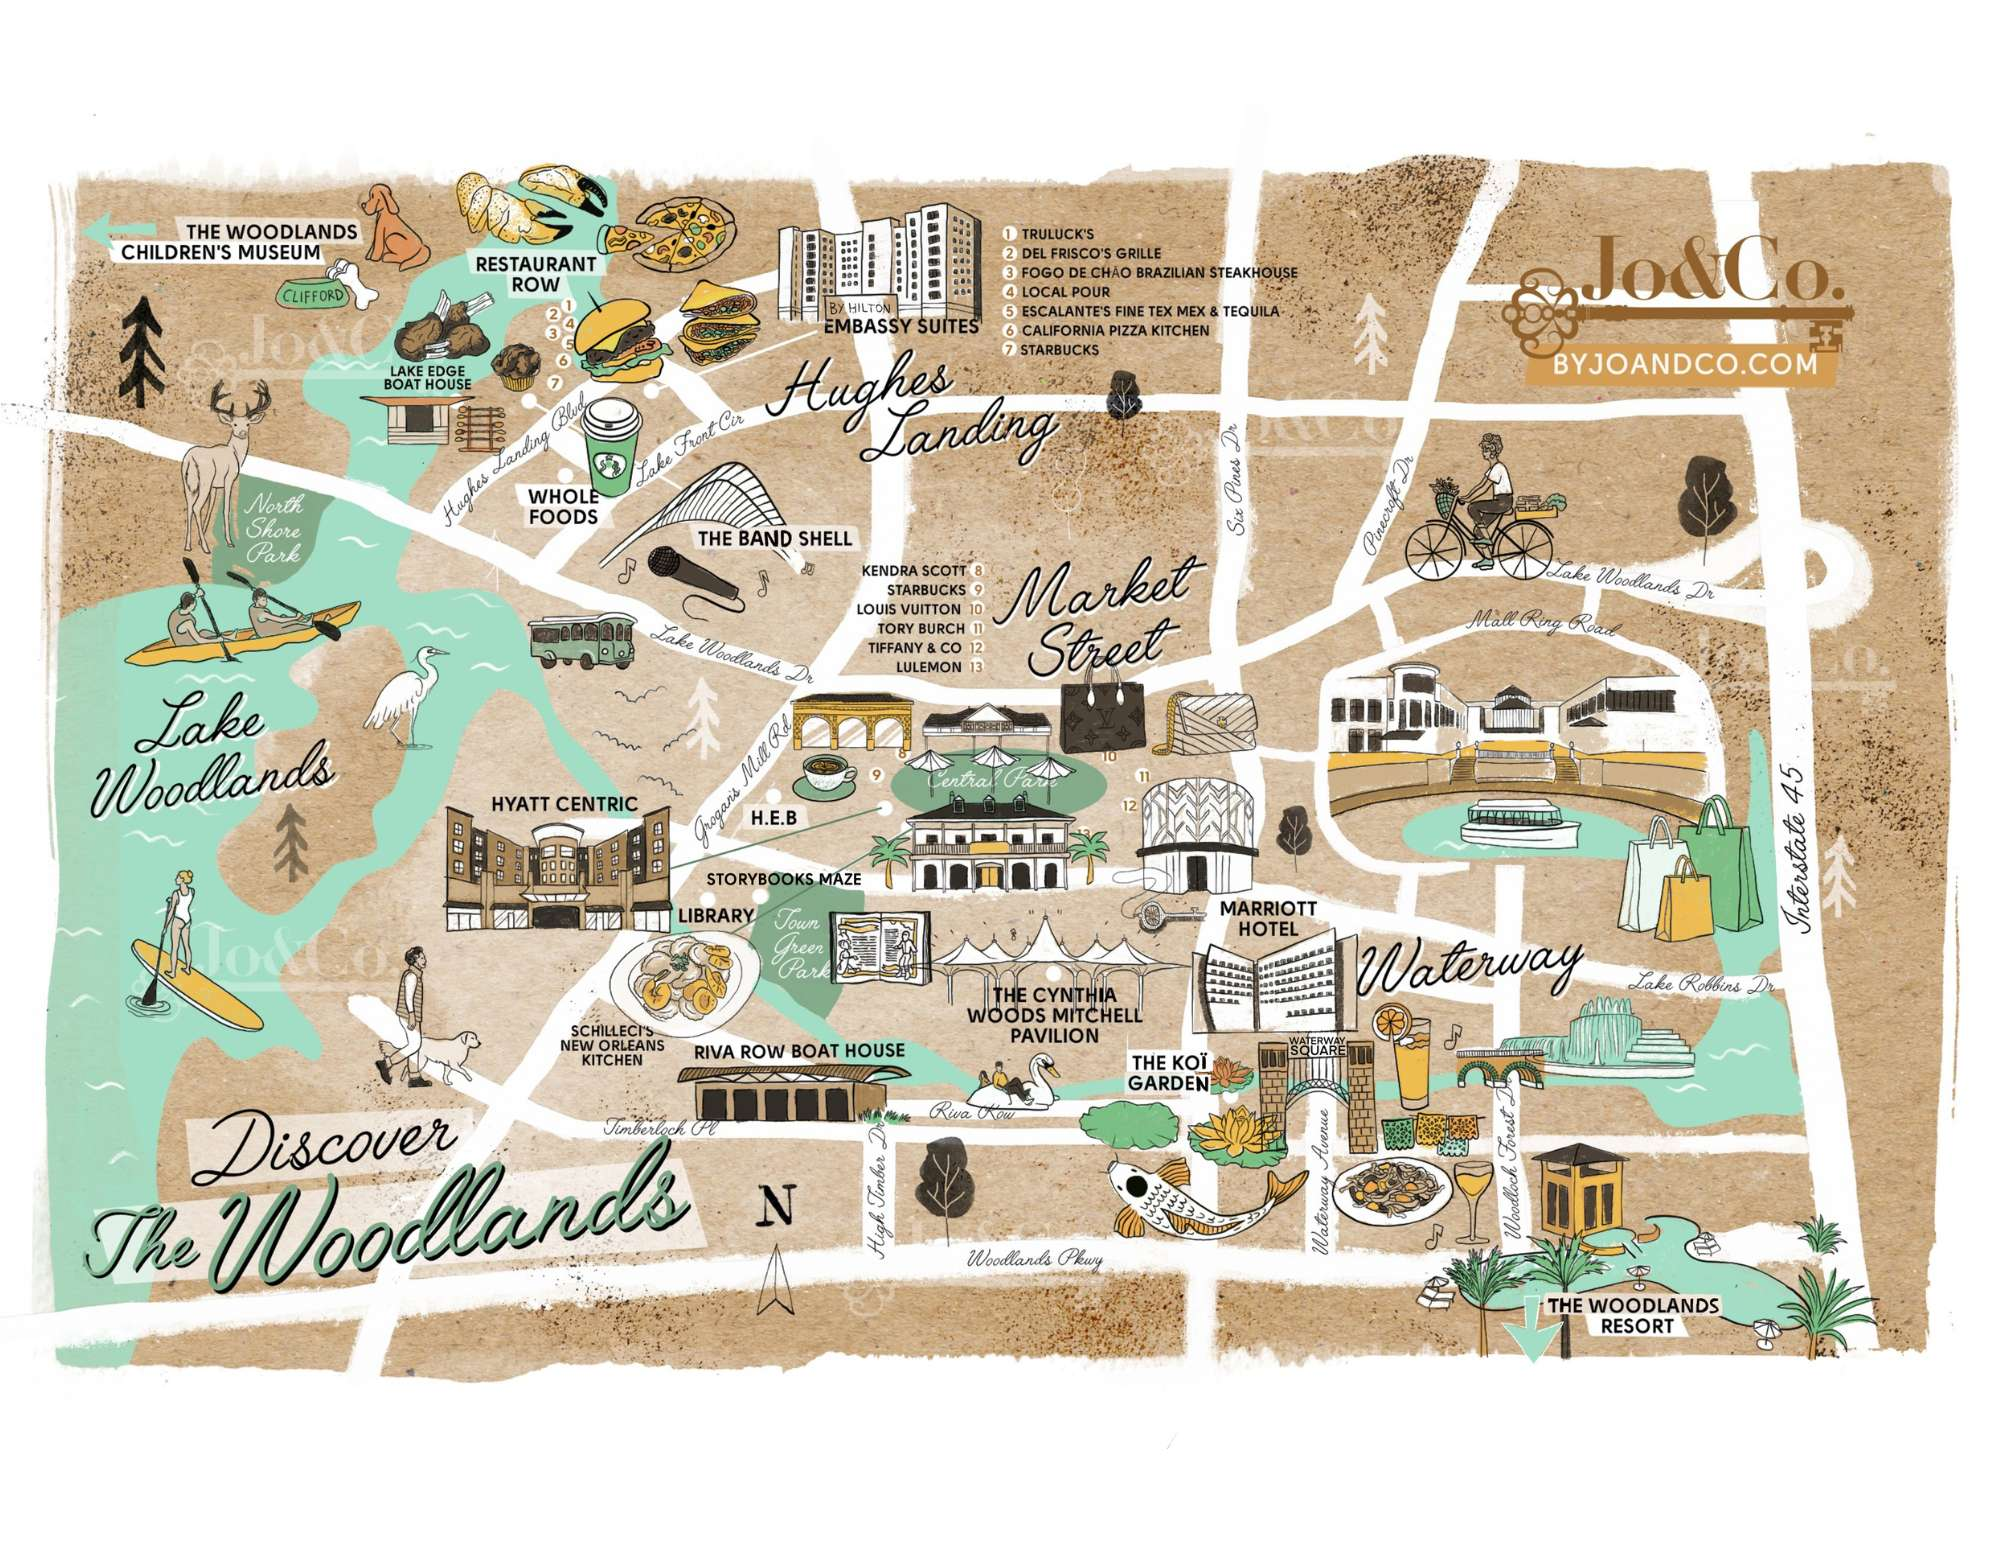 Discover The Woodlands - Map of the Front of The Woodlands